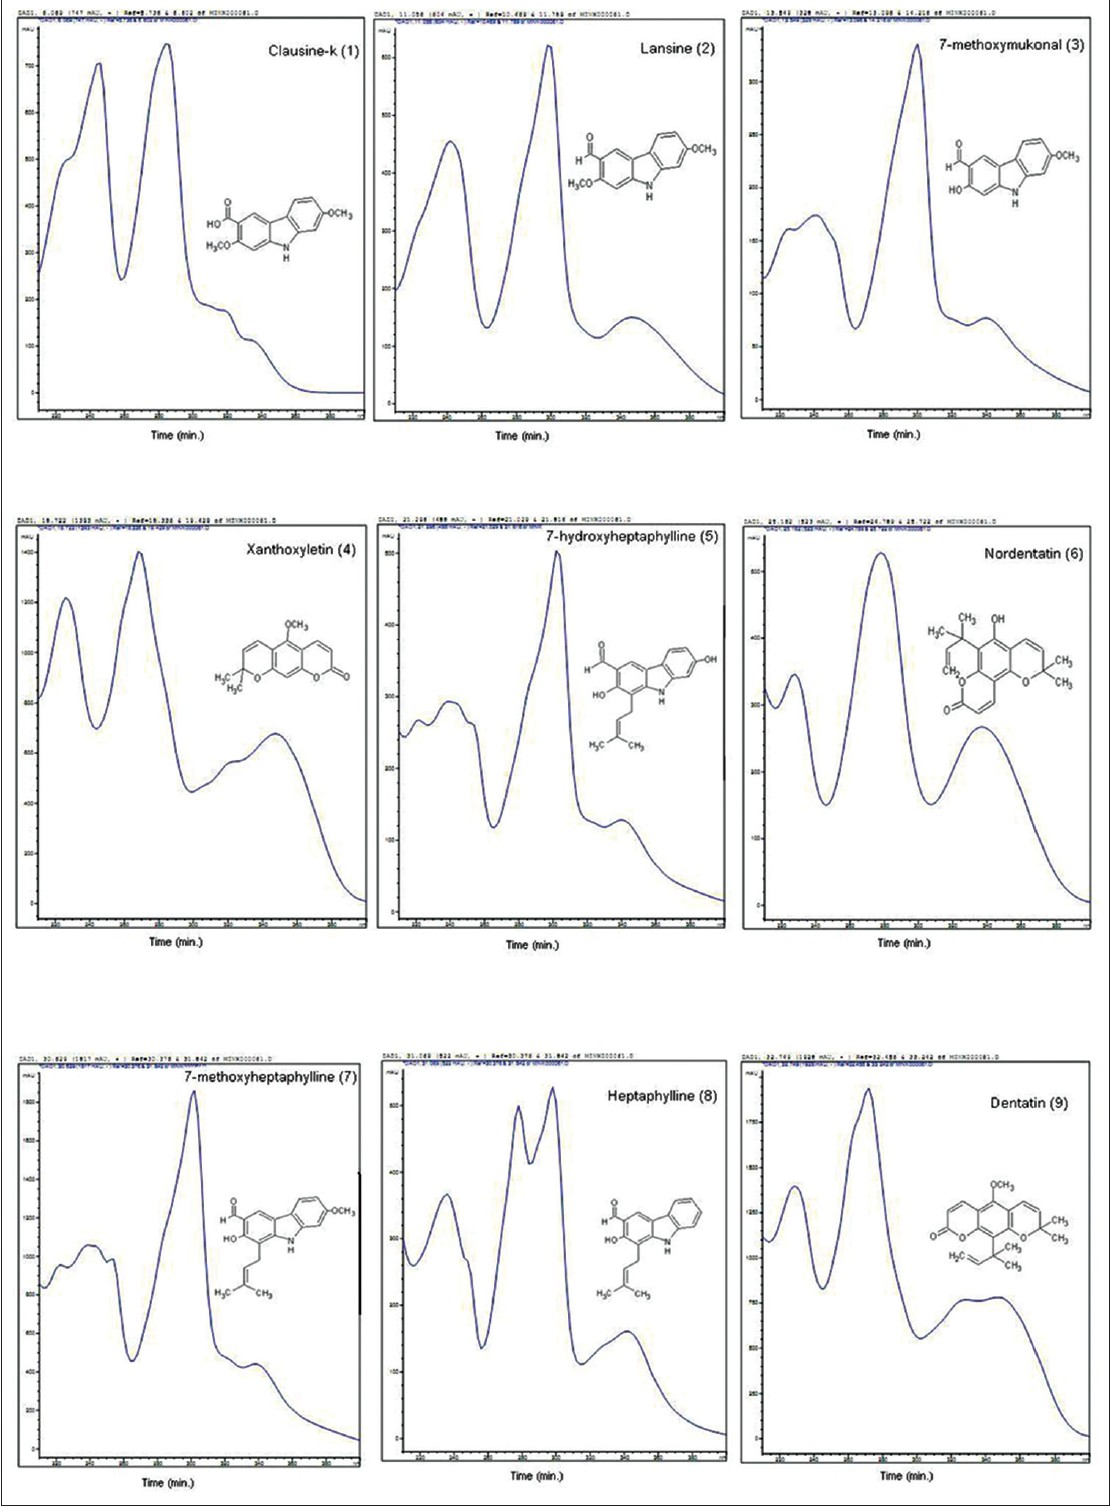 Simultaneous determination of nine analytes in <i>Clausena